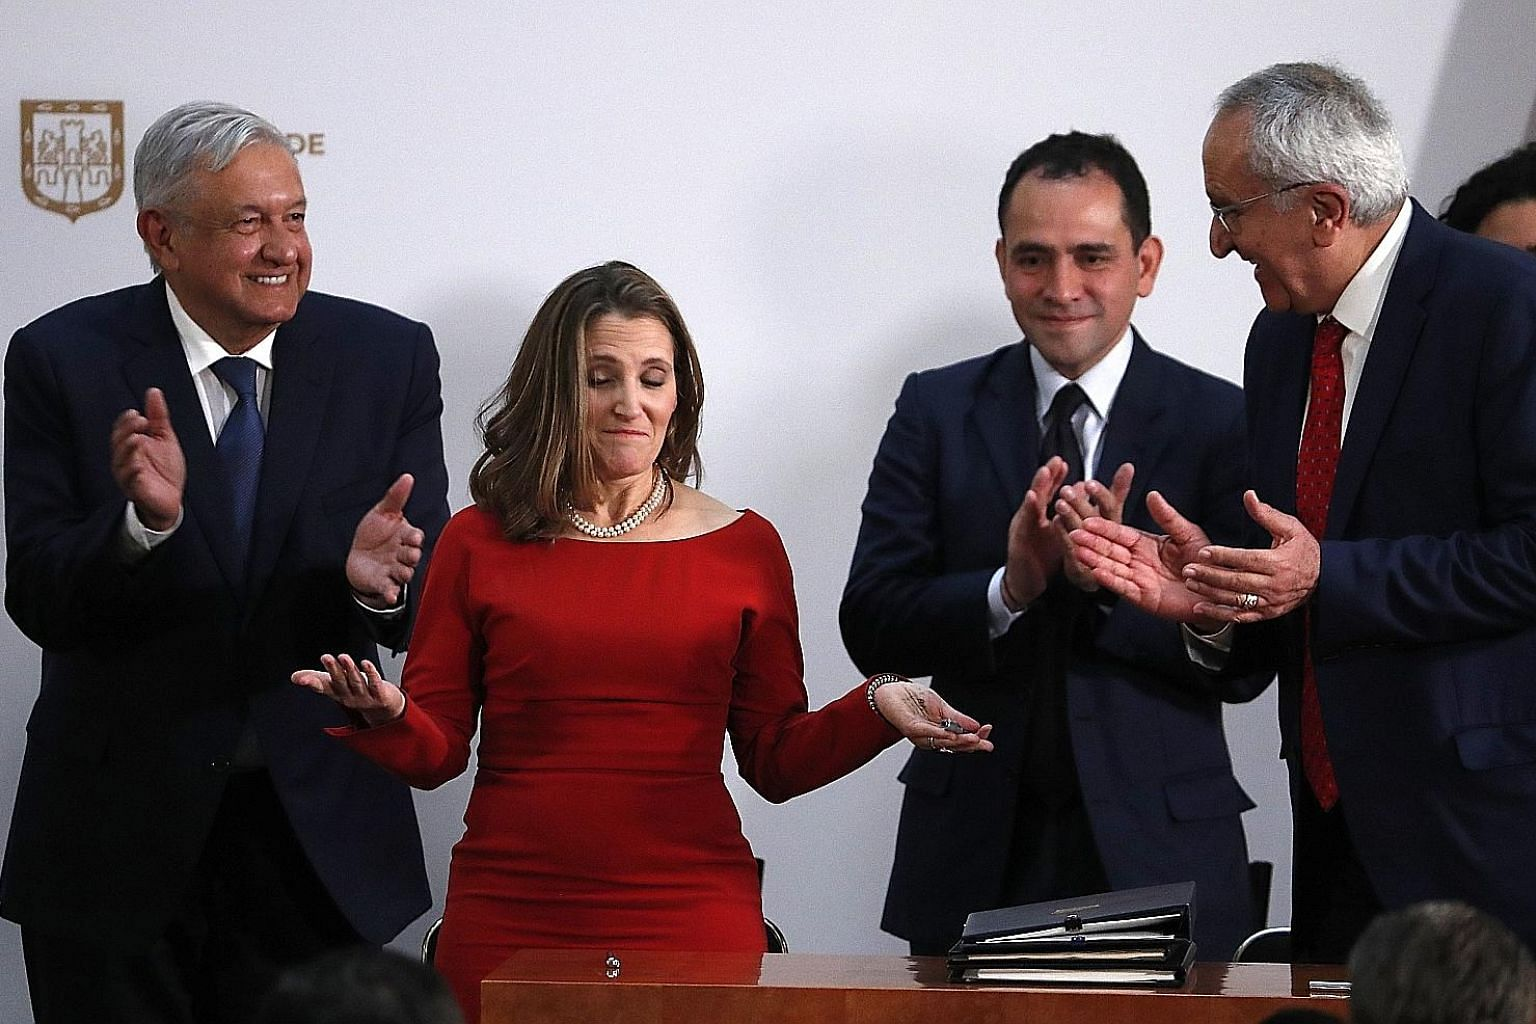 (From left) Mexican President Andres Manuel Lopez Obrador, Canadian Deputy Prime Minister Chrystia Freeland, Mexican Treasury Secretary Arturo Herrera and Mexico's top trade negotiator Jesus Seade after signing the revamped US-Mexico-Canada Agreement